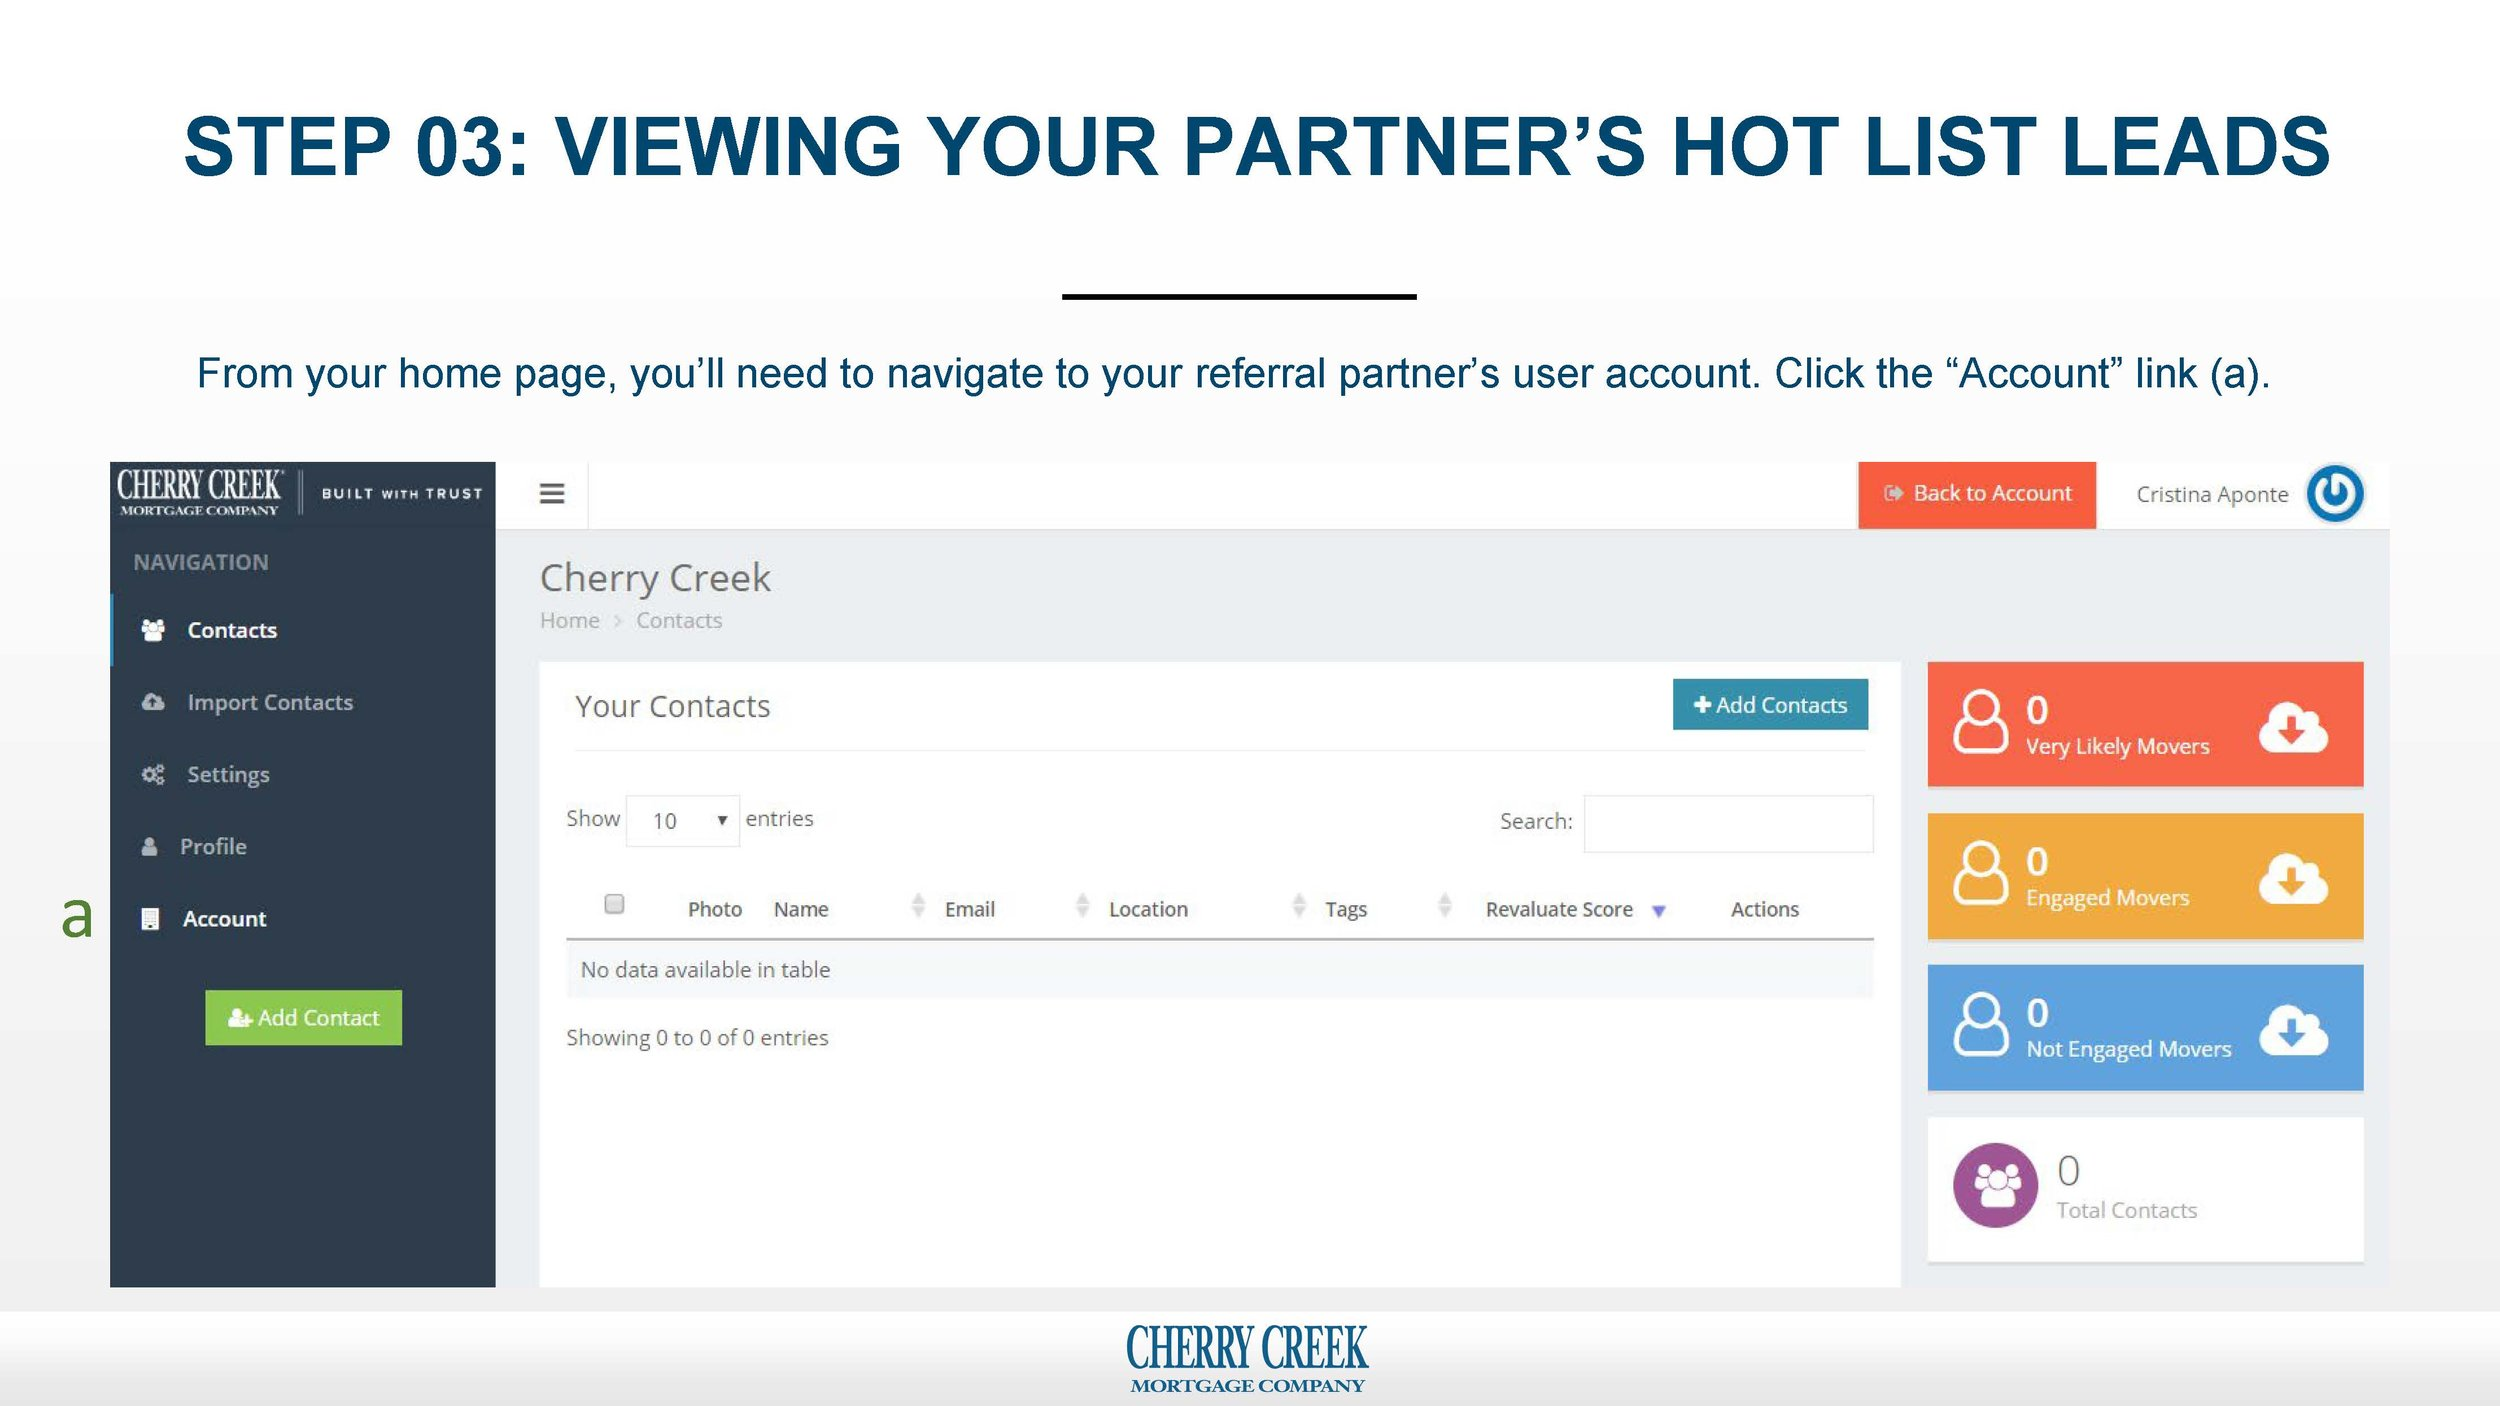 Predictive Analytics - How to add a referral partner_add their contacts_and view their hot list_Page_08.jpg